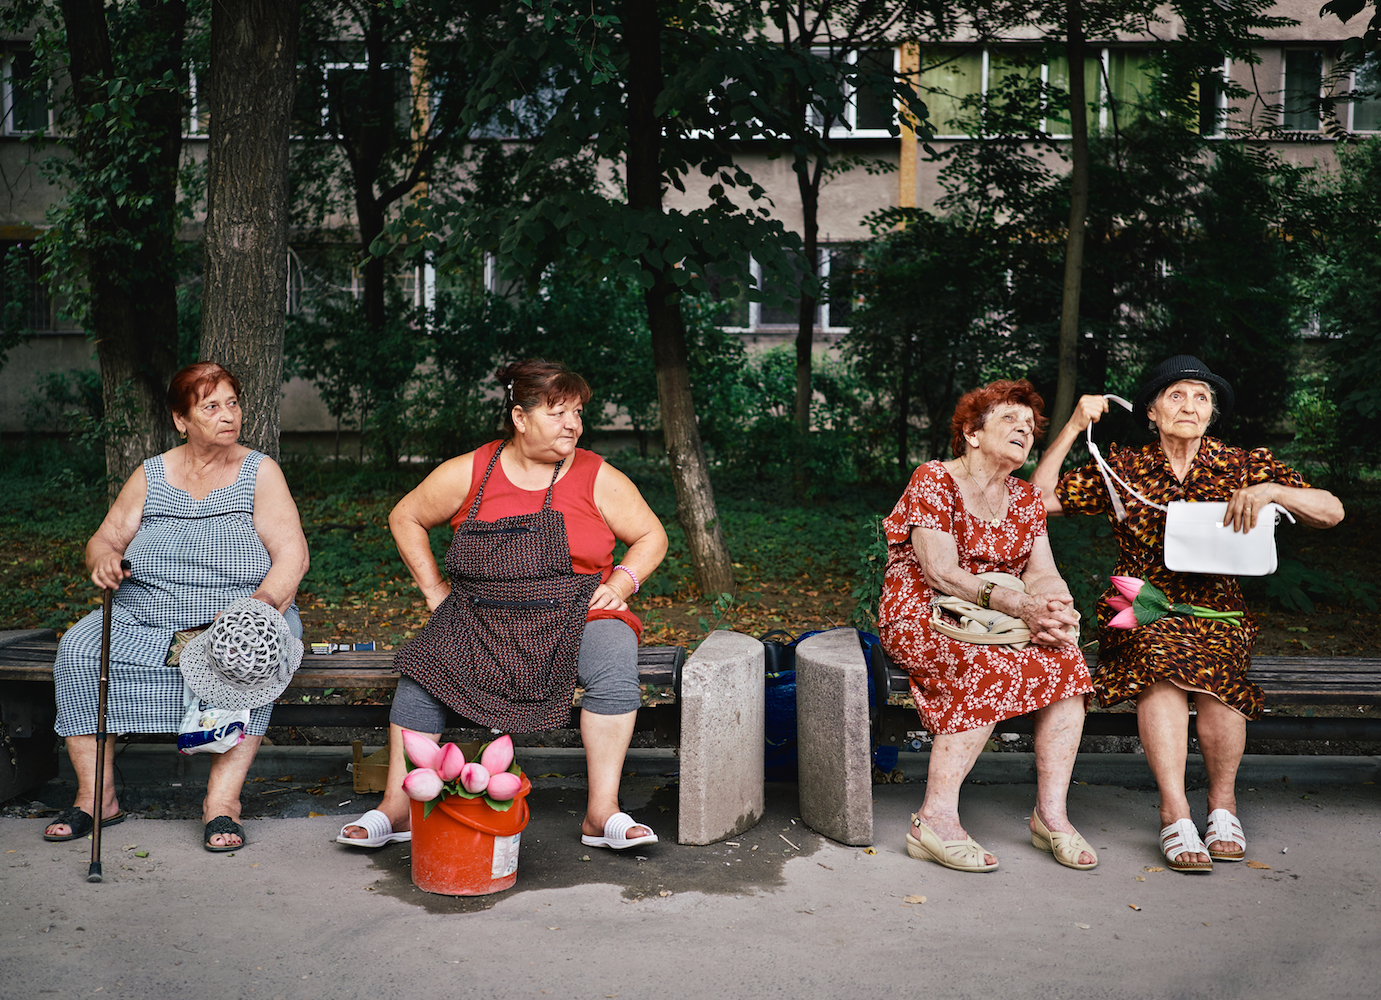 From gossiping grandmas to effortless fashionistas, discover the people of Bucharest